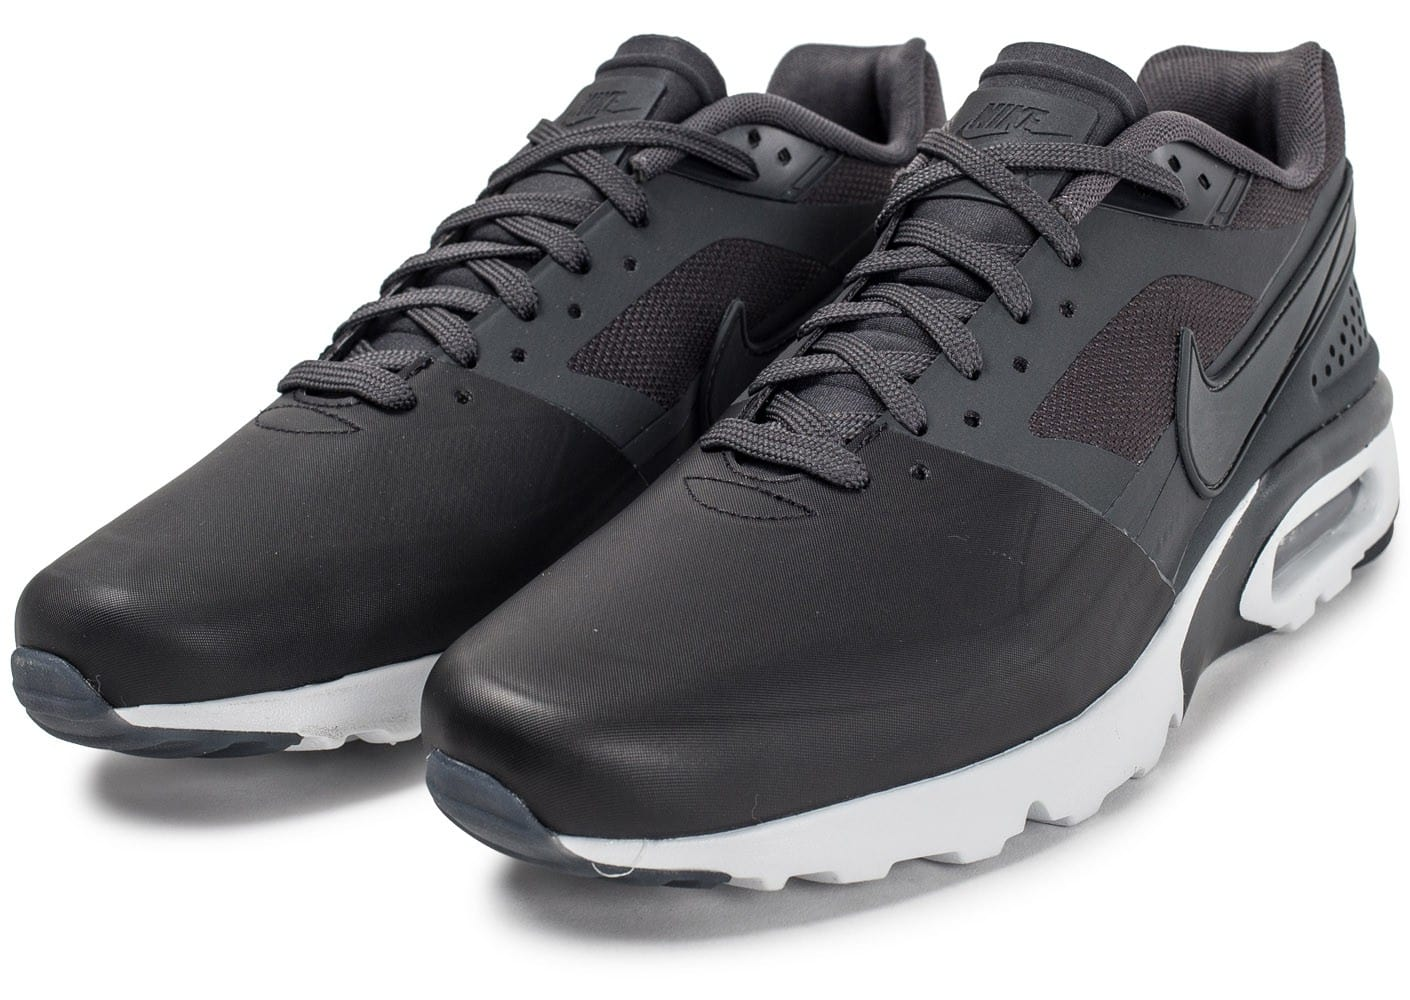 hot sale online bfbe2 a0227 ... Chaussures Nike Air Max BW Ultra SE noir vue intérieure ...